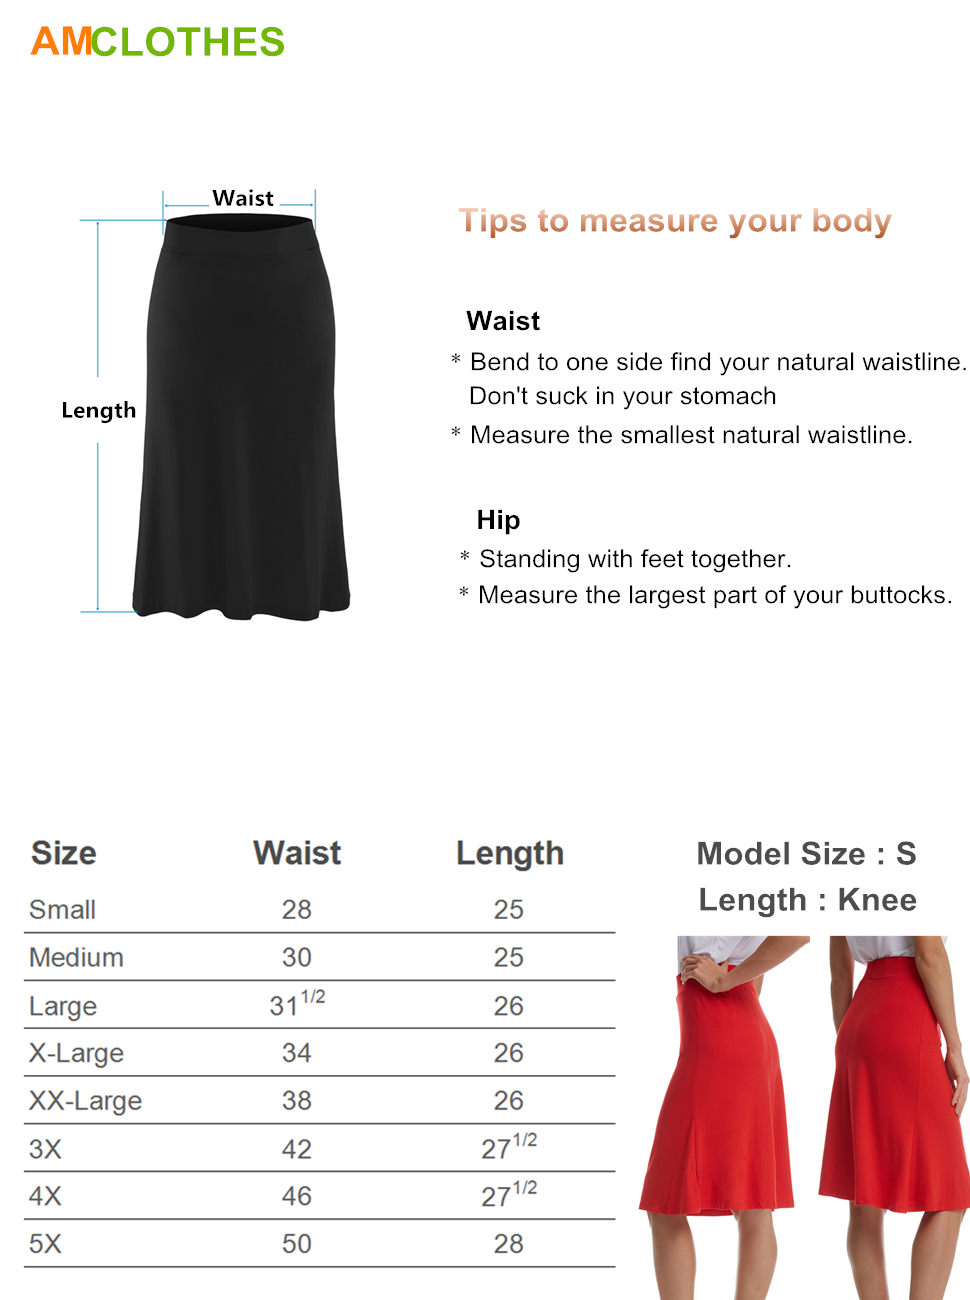 5fe89ab79 Skirt Type: Midi Skirt Skirt Length: Above Knee Length Fabric: 95% Rayon/5%  Spandex, Not See Through, Stretchy and Comfy Pattern Type: Solid Colored